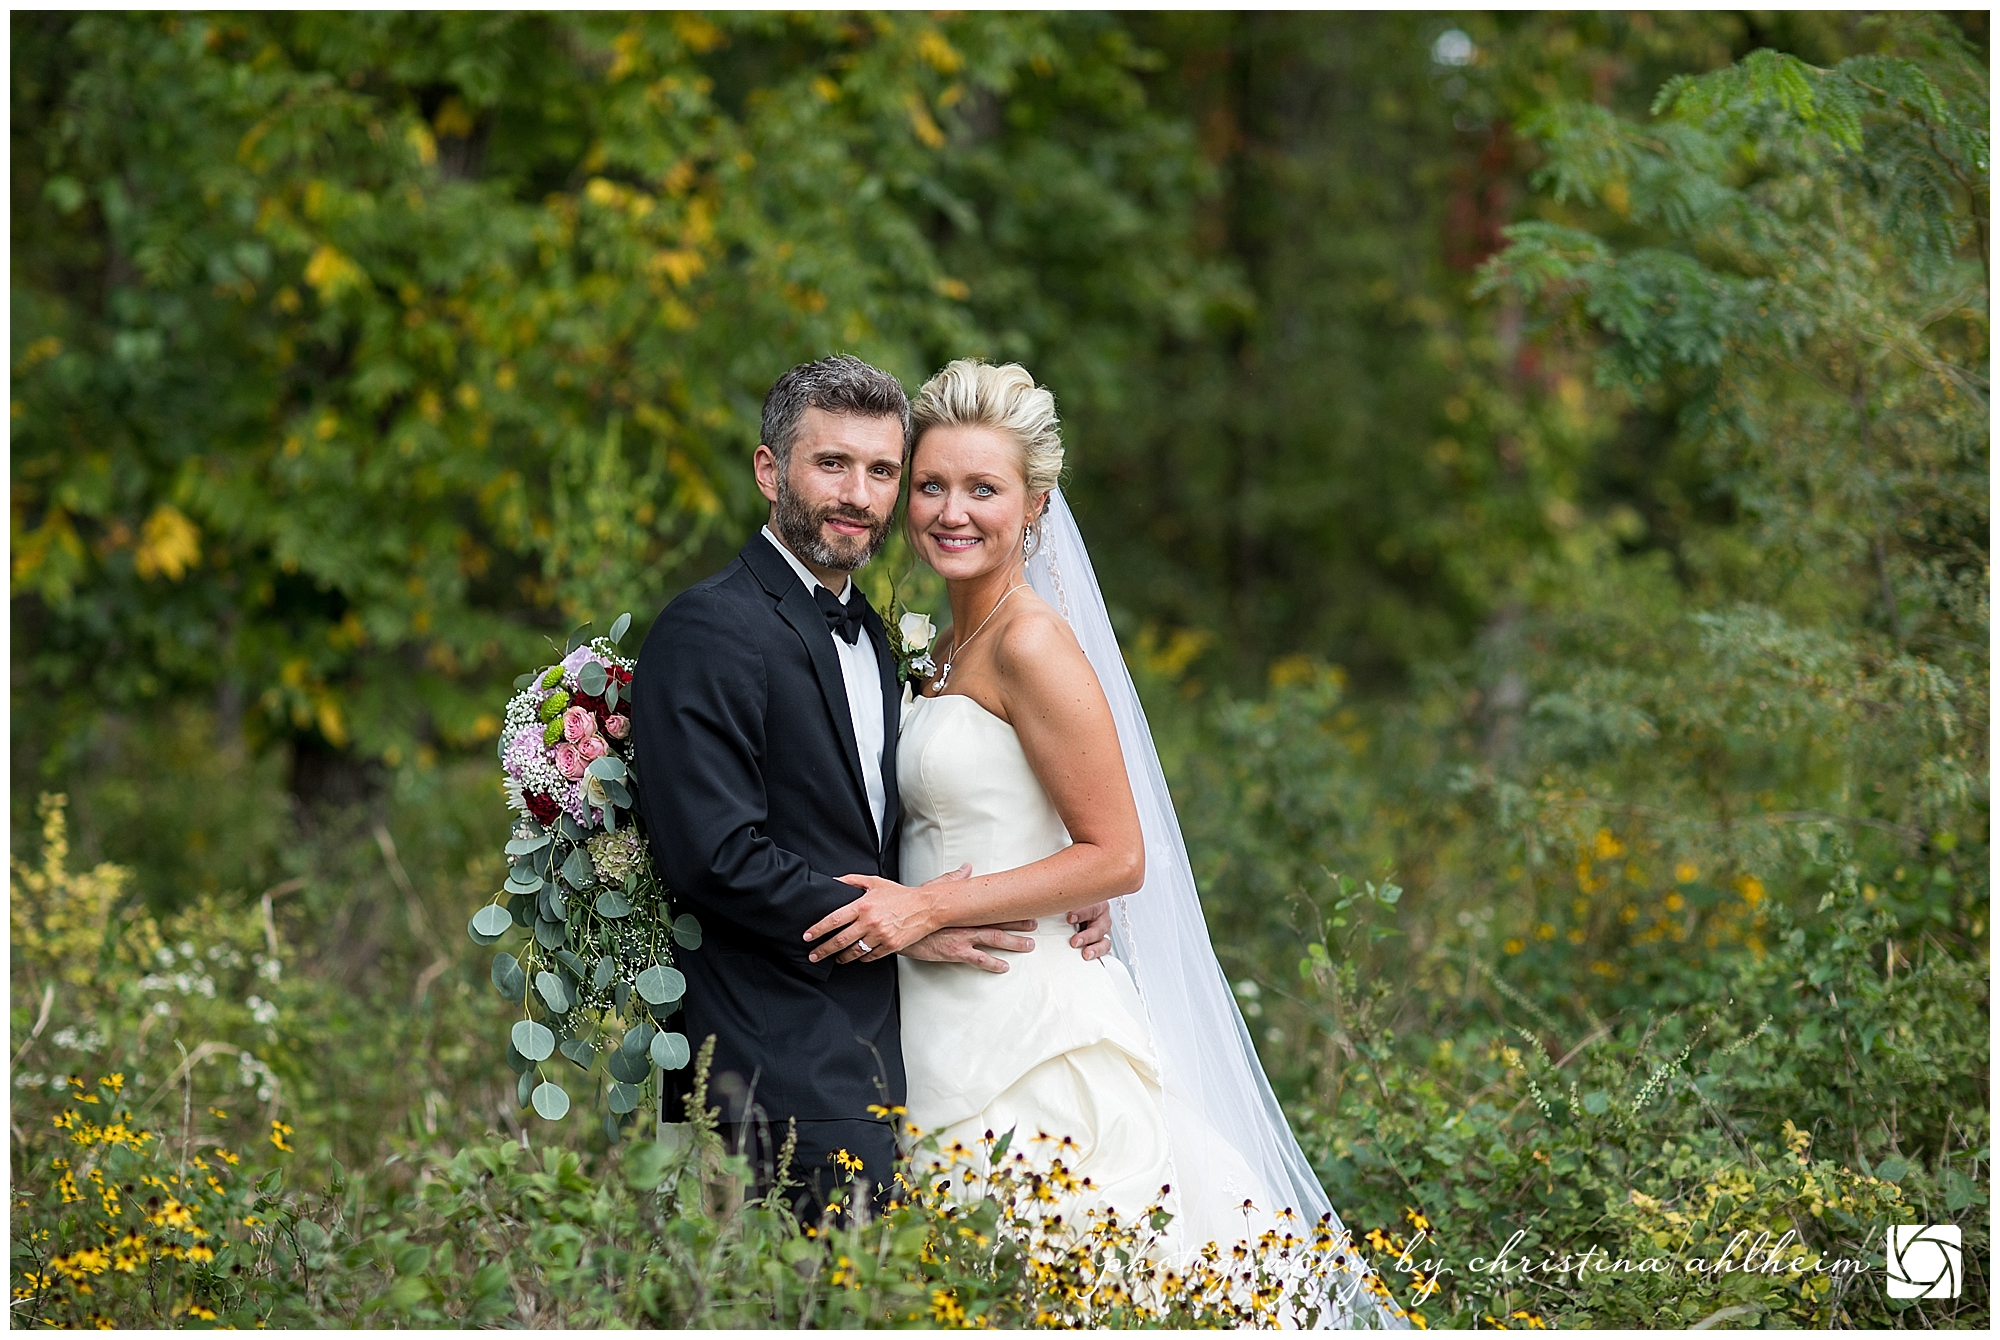 Rustic Outdoor Wedding Photography